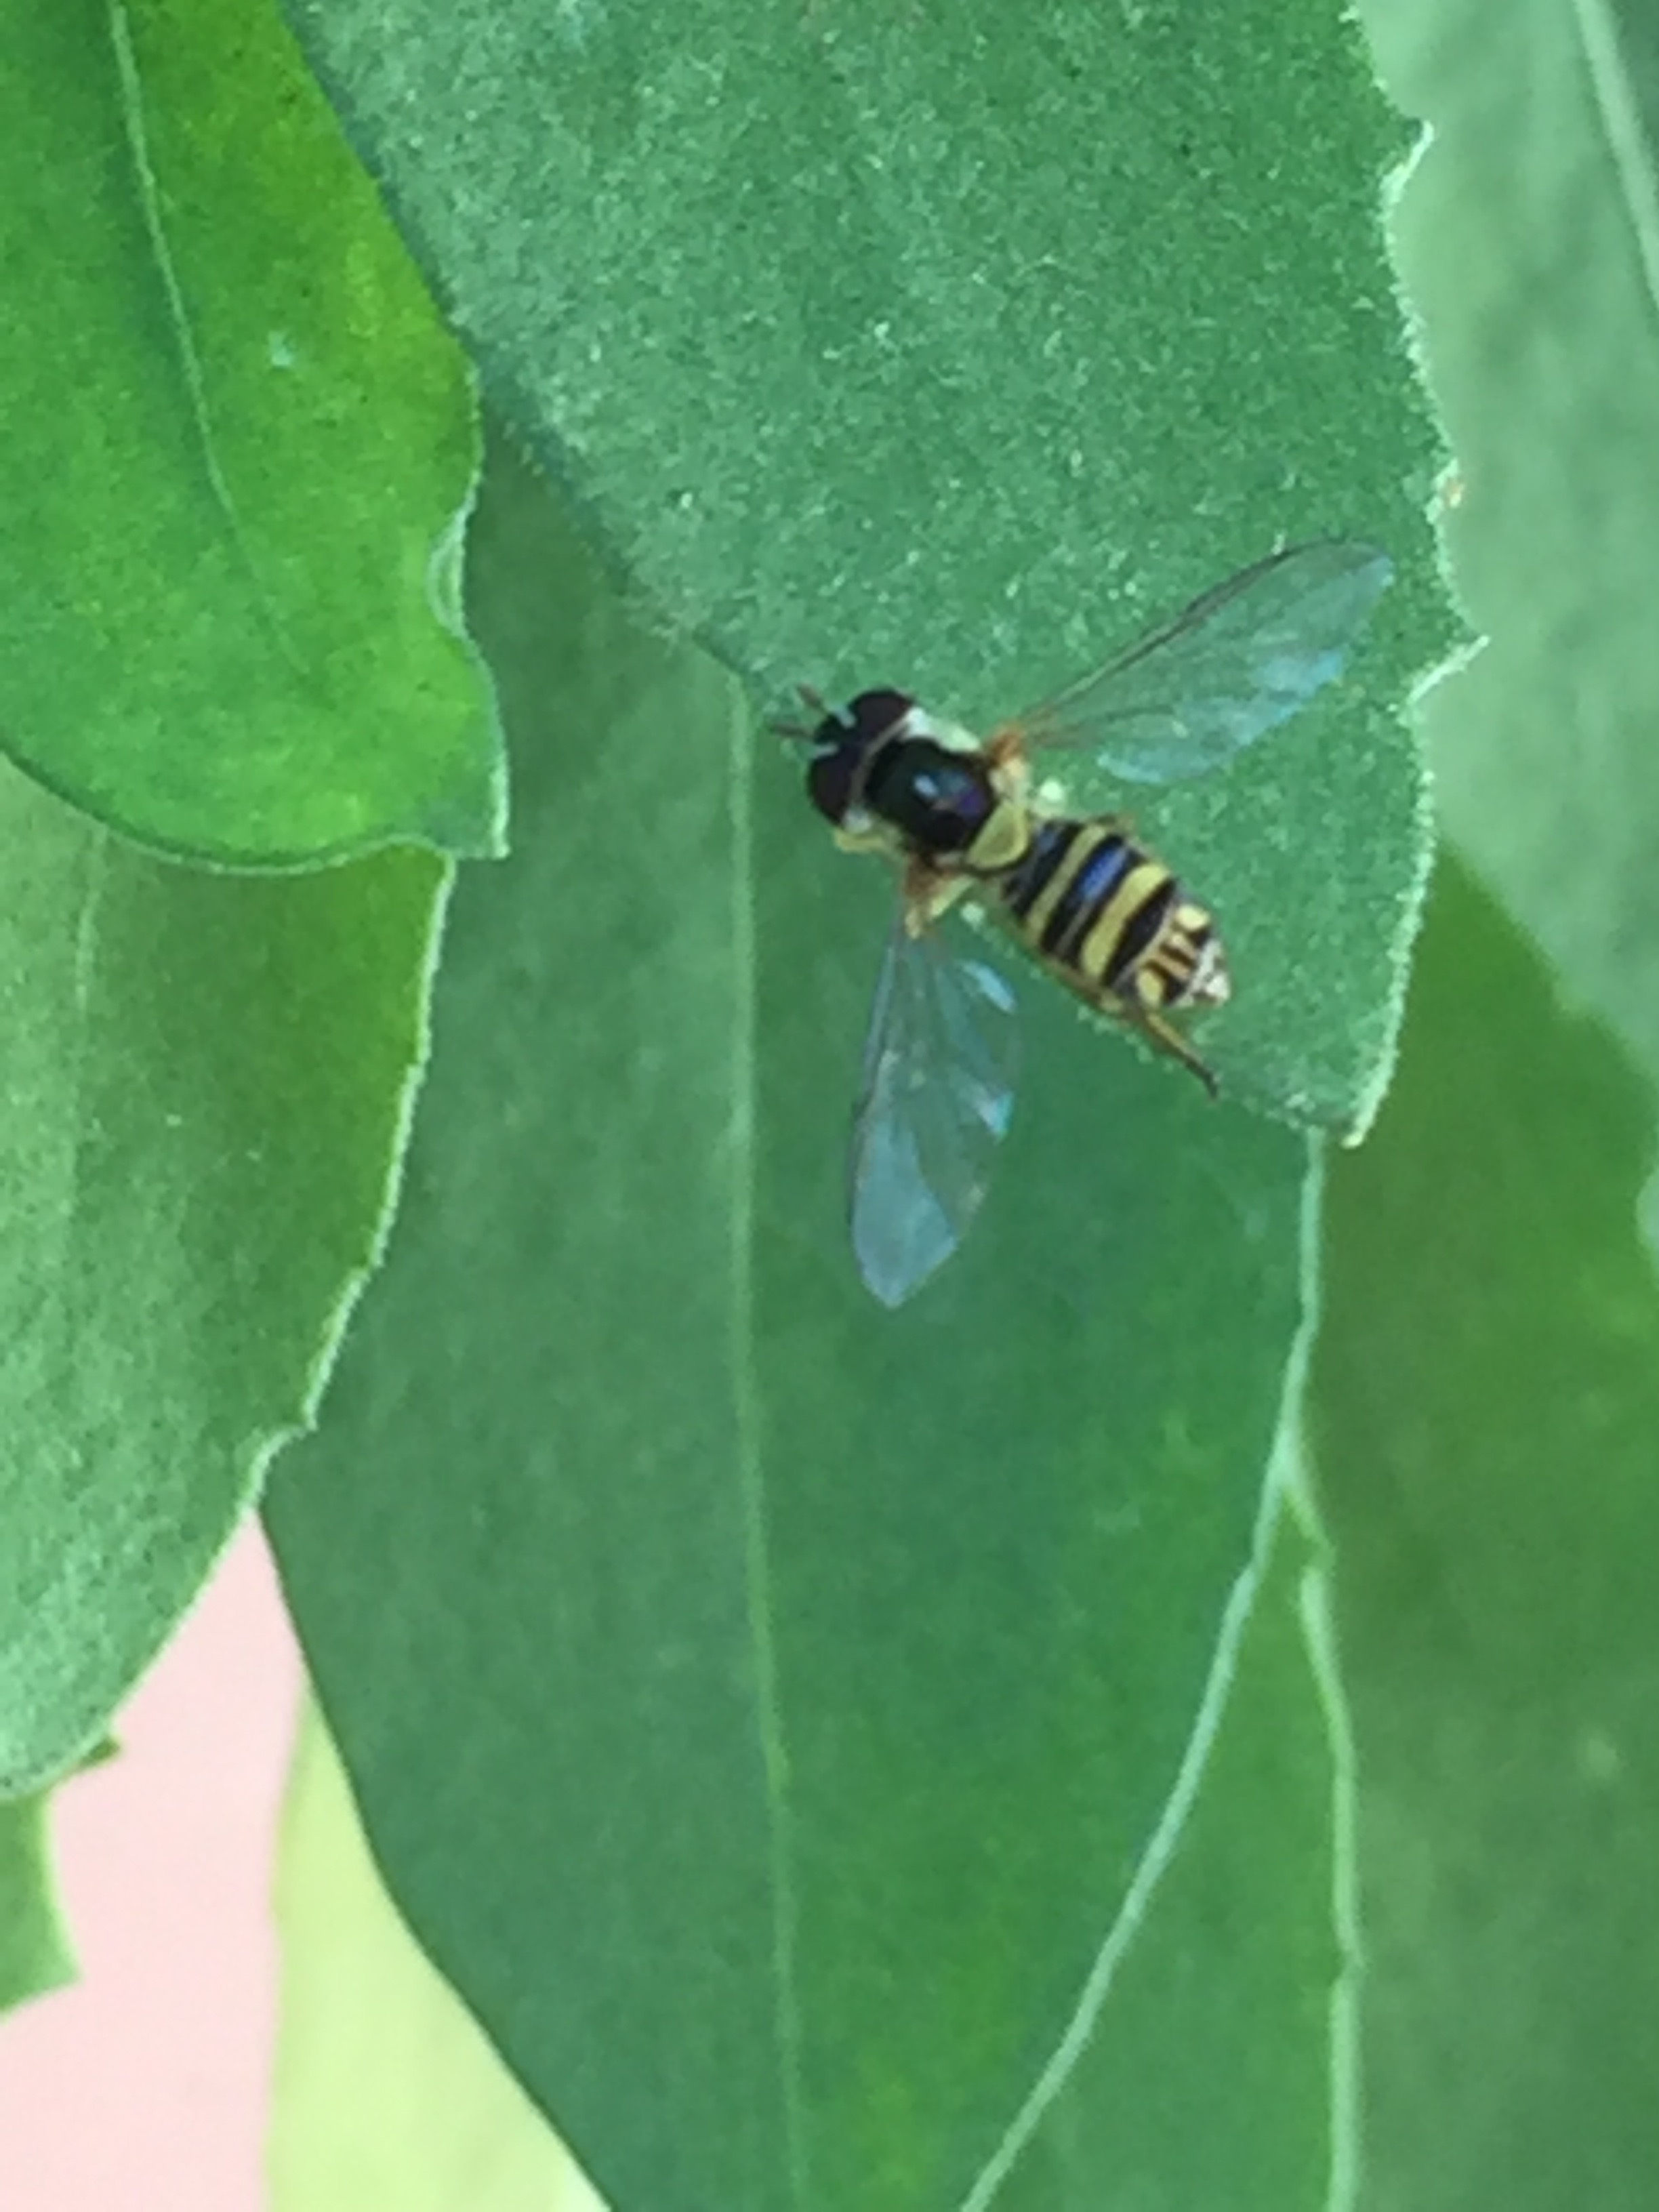 I can't figure out what this is, I think it might be a cuckoo bee